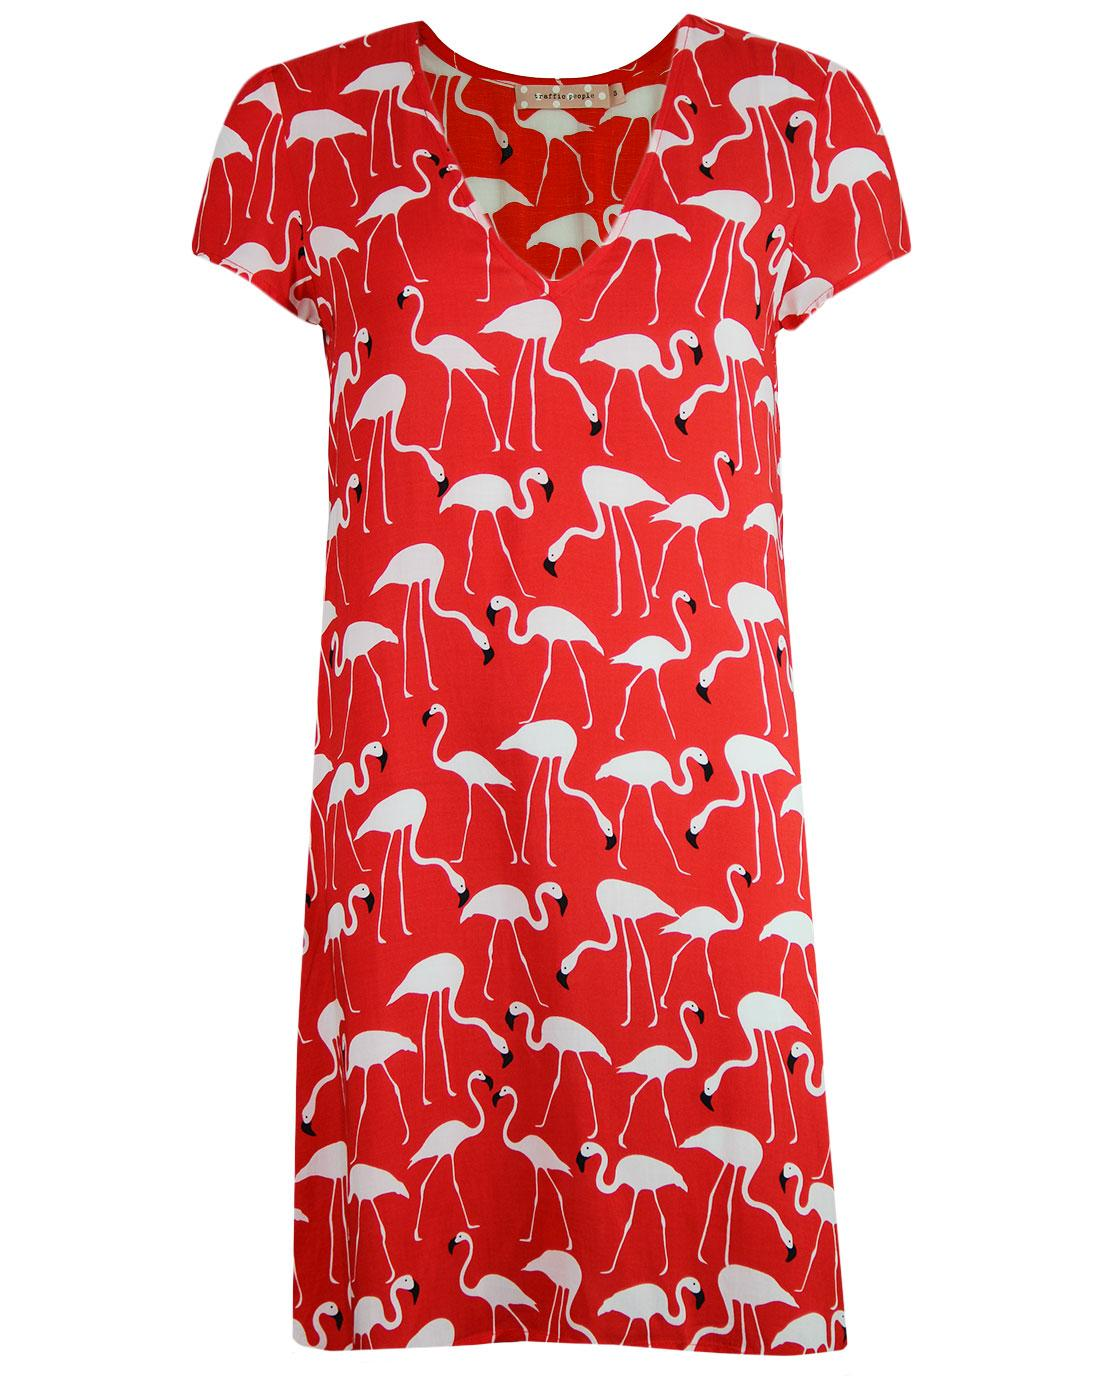 Josie TRAFFIC PEOPLE Vintage Flamingo Dress Red